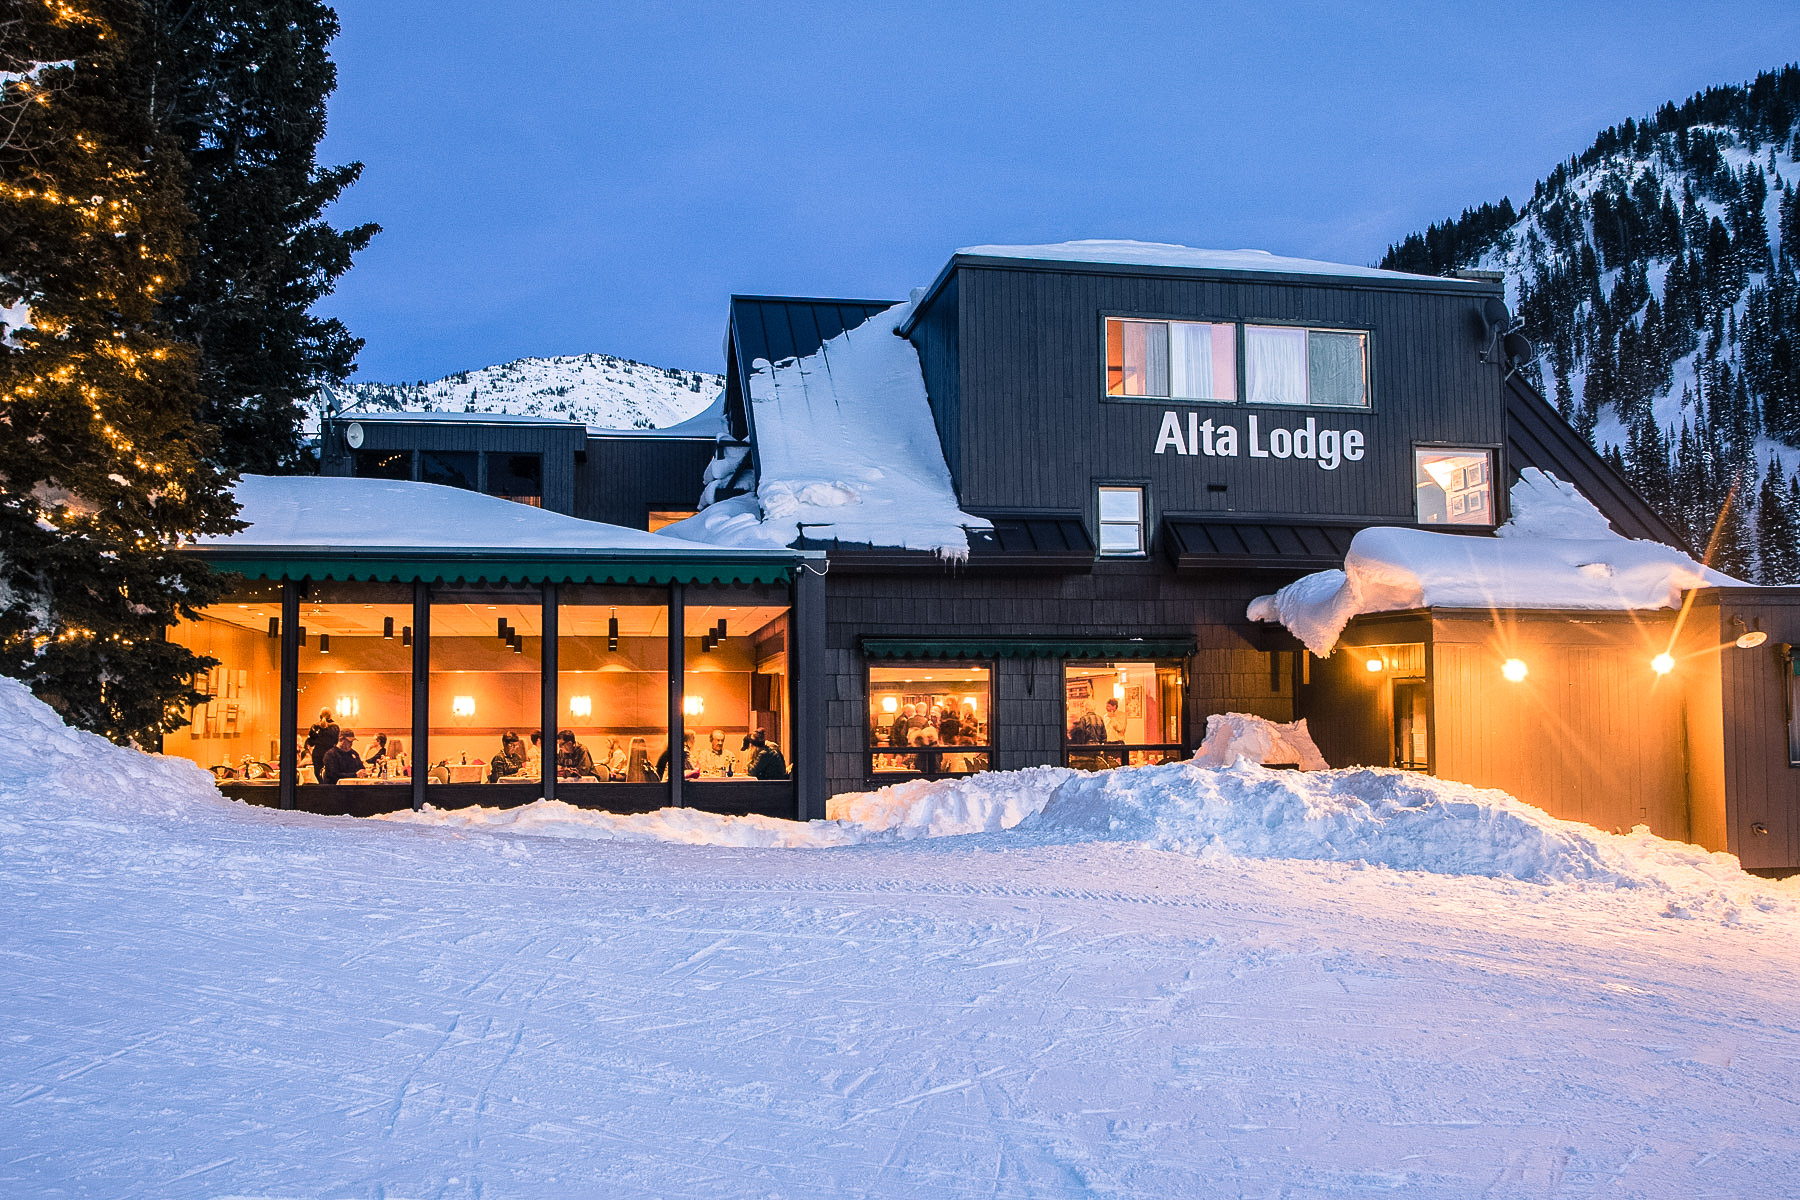 Looking into the bright lights of the Alta Lodge dining room in the evening, from the rope tow hill.